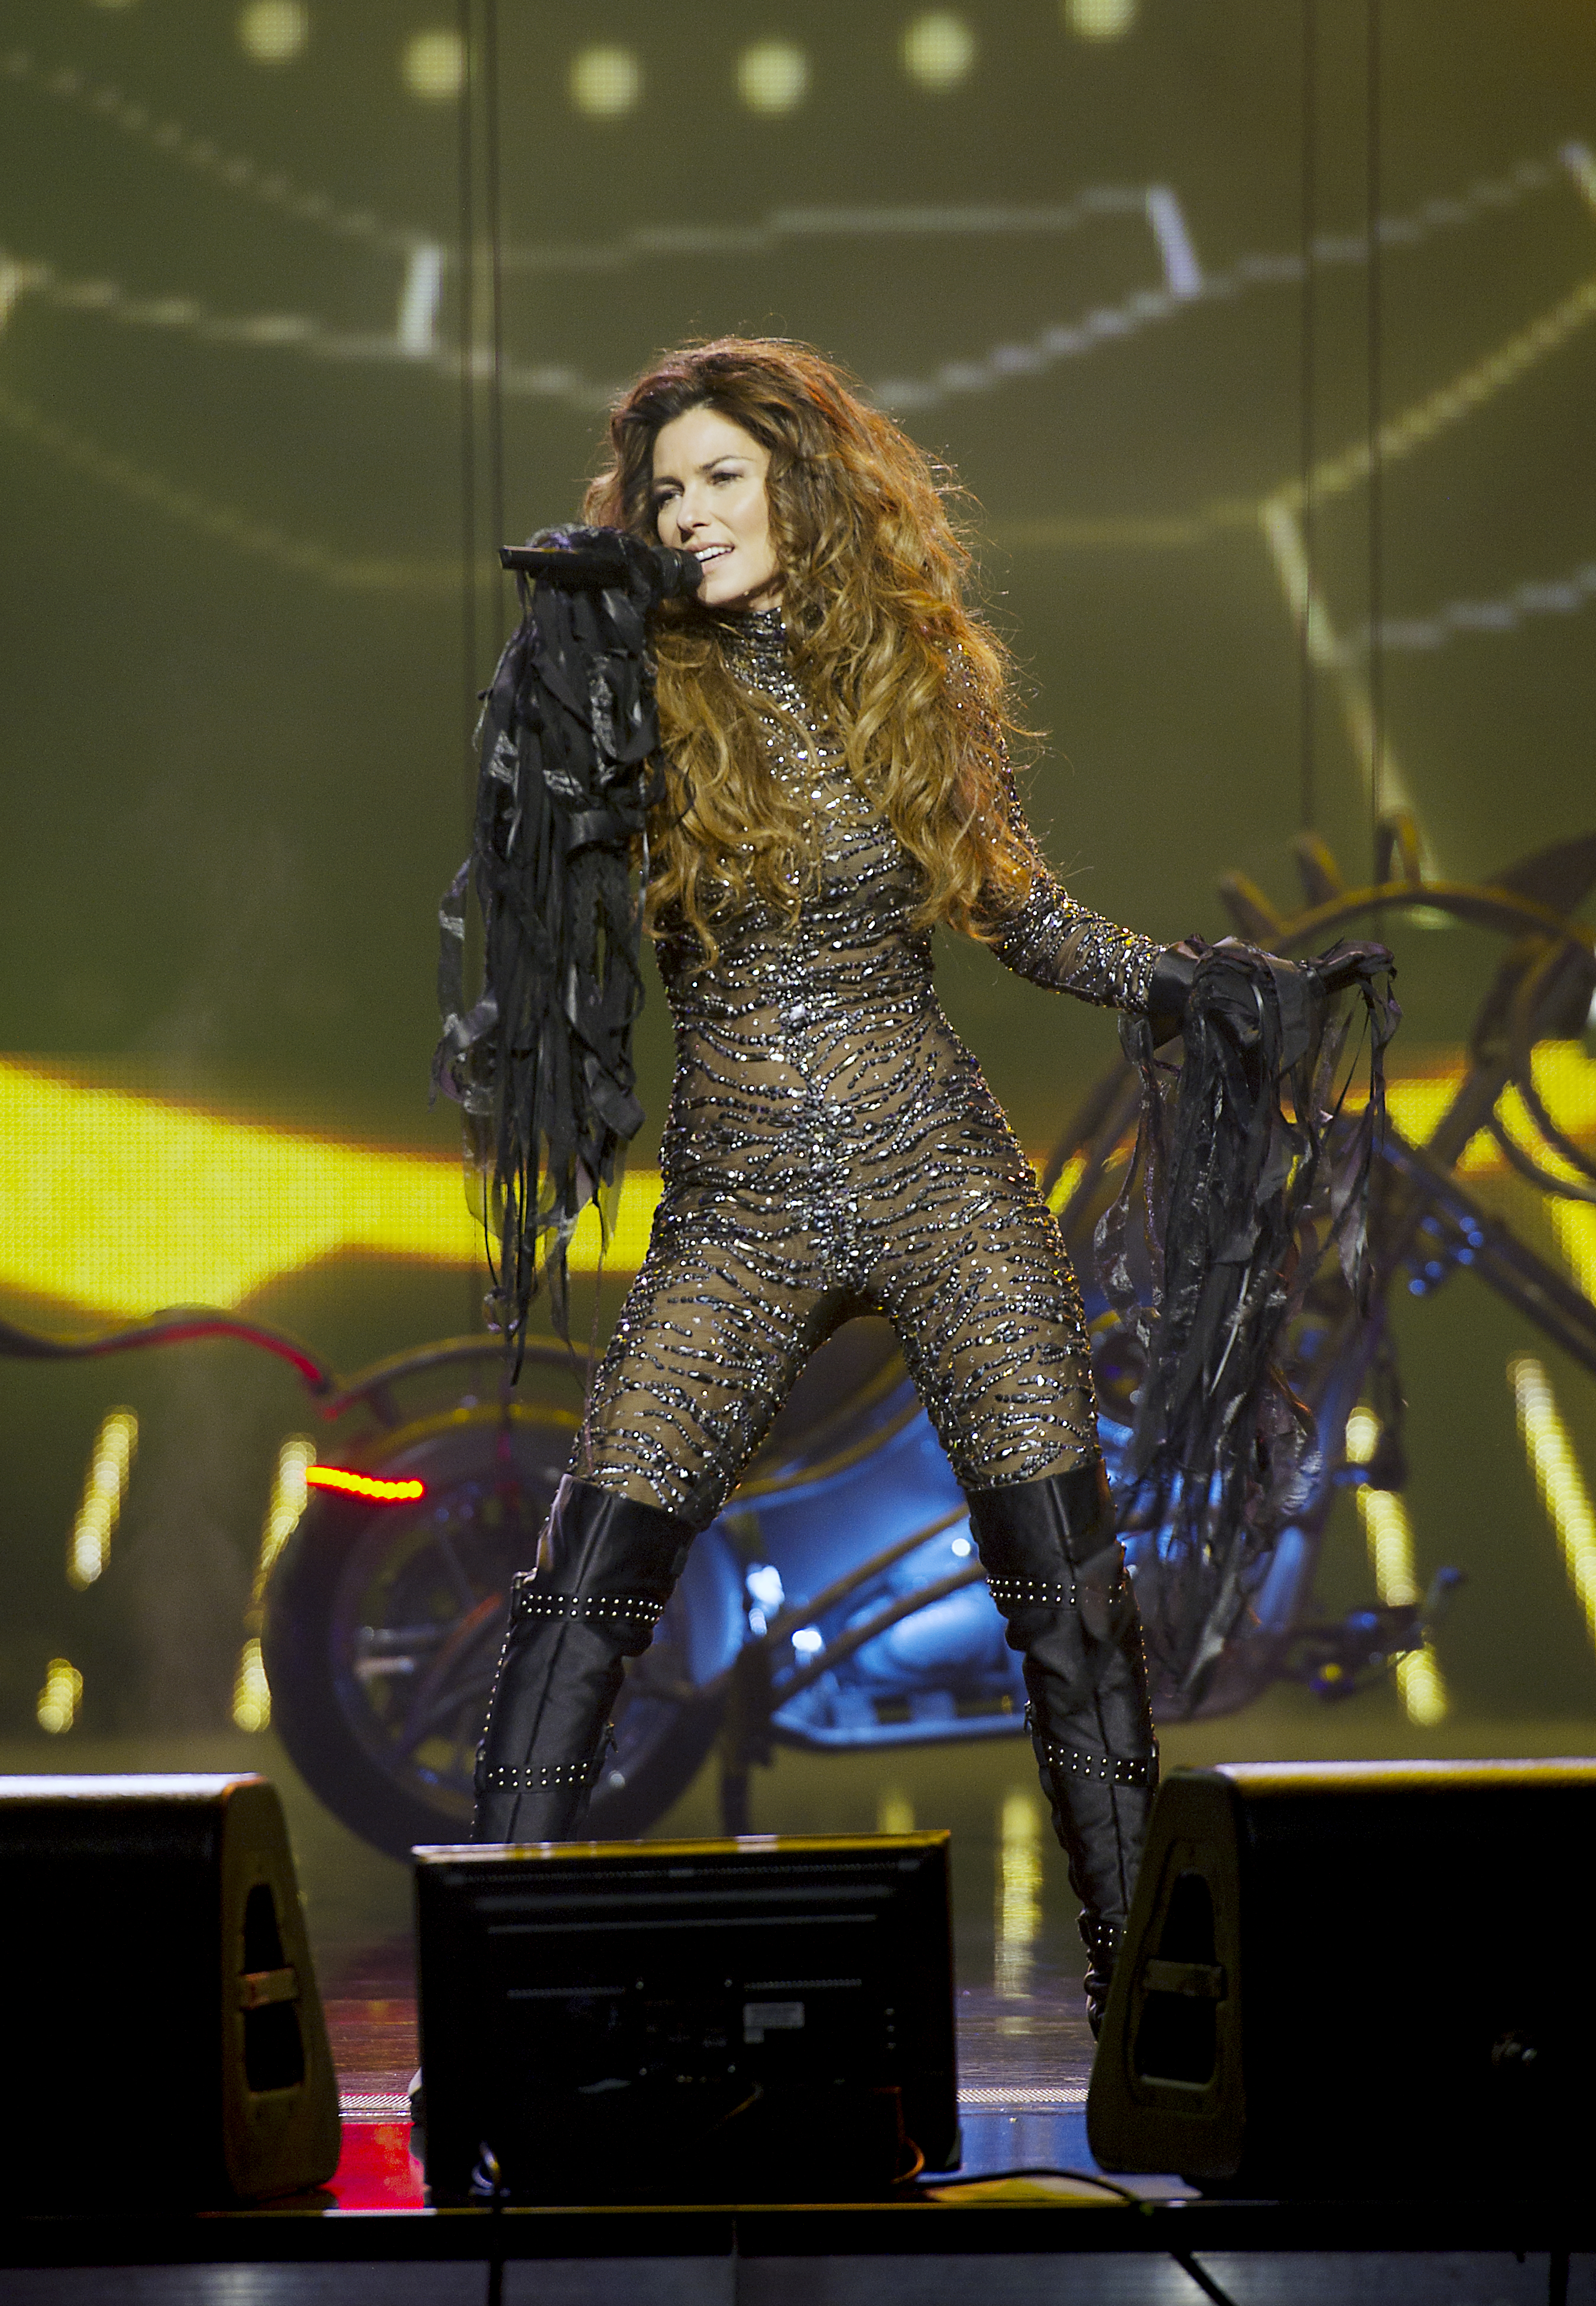 Shania Twain Performing Rare Canadian Concert July 9 In